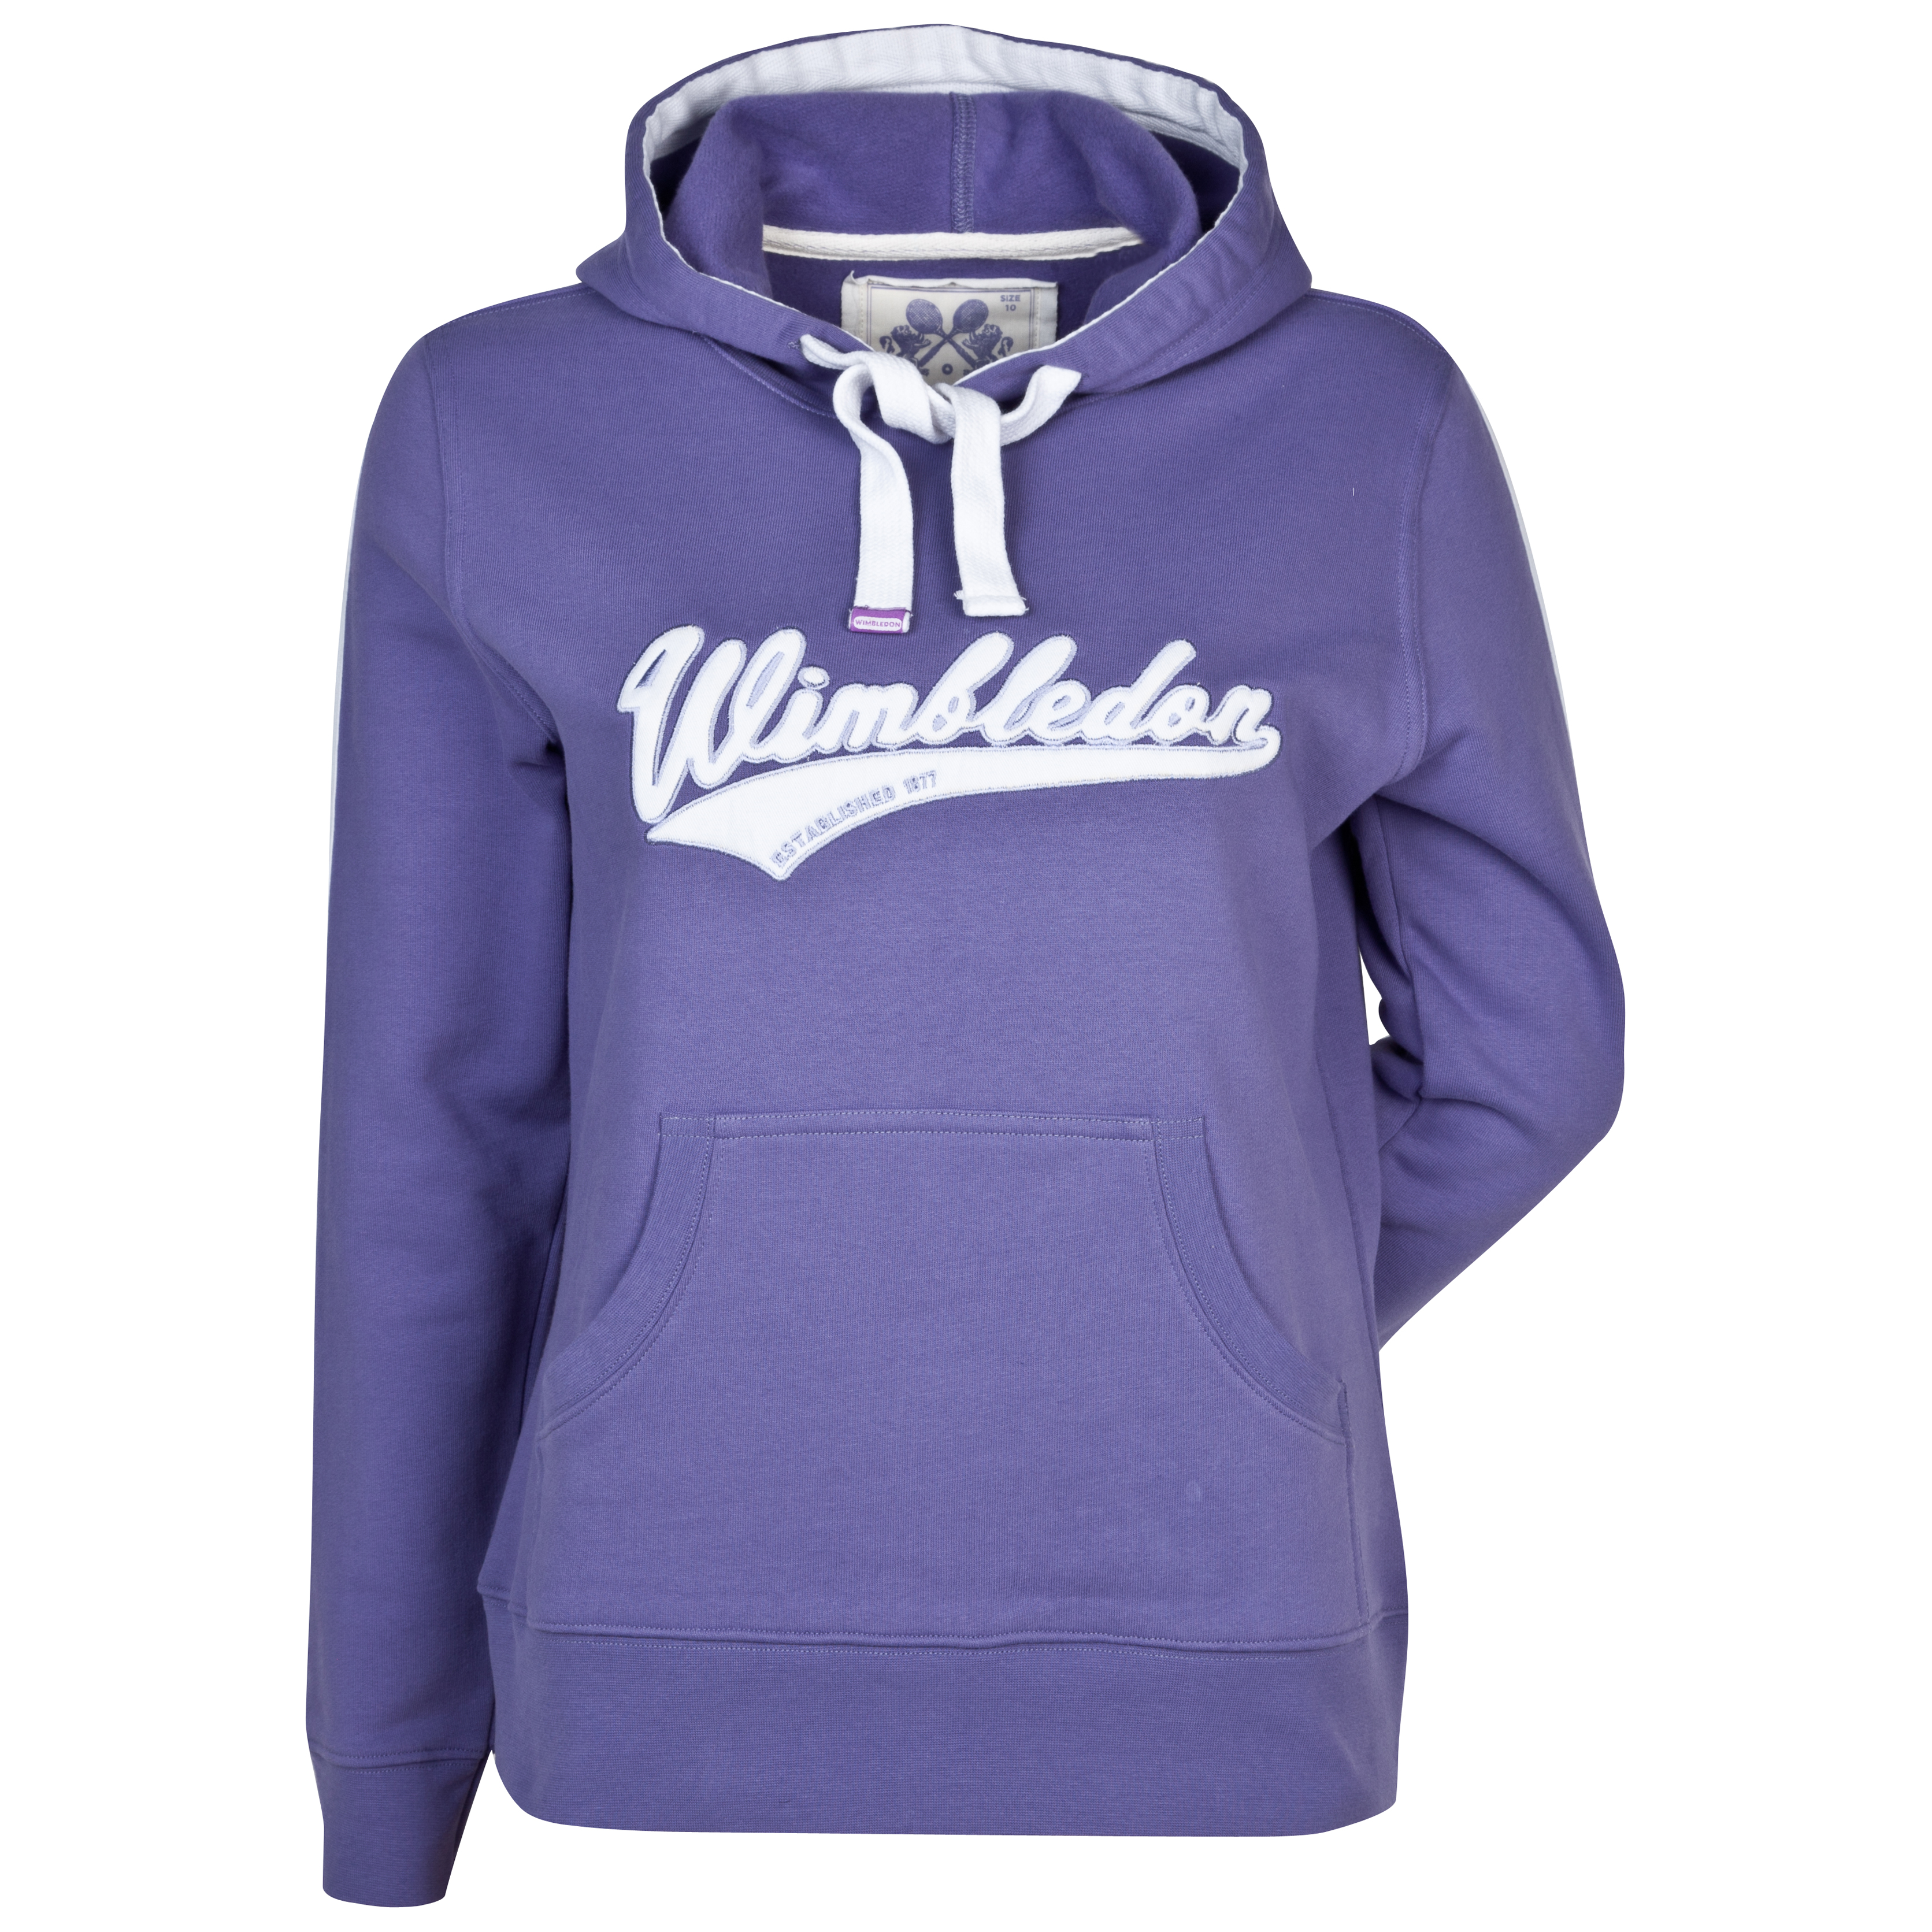 Wimbledon Hooded Sweatshirt - Ladies - Dark lilac